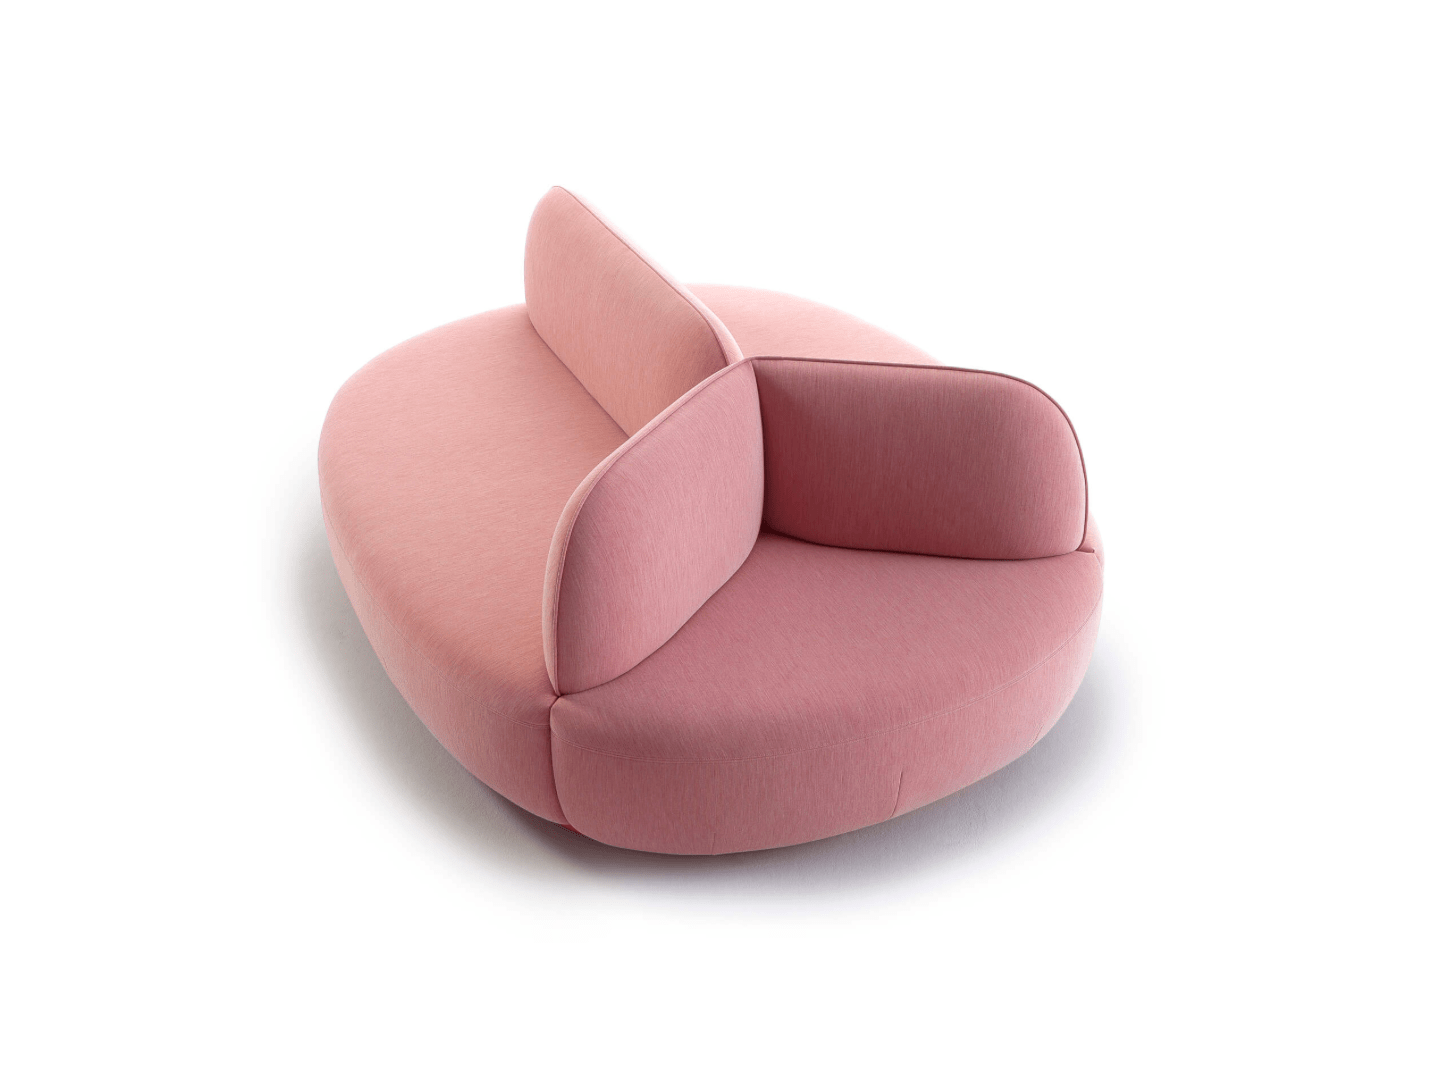 spanish sofa brand lazy boy cushion replacement millennial pink ideas for your perfect home aliz 39s